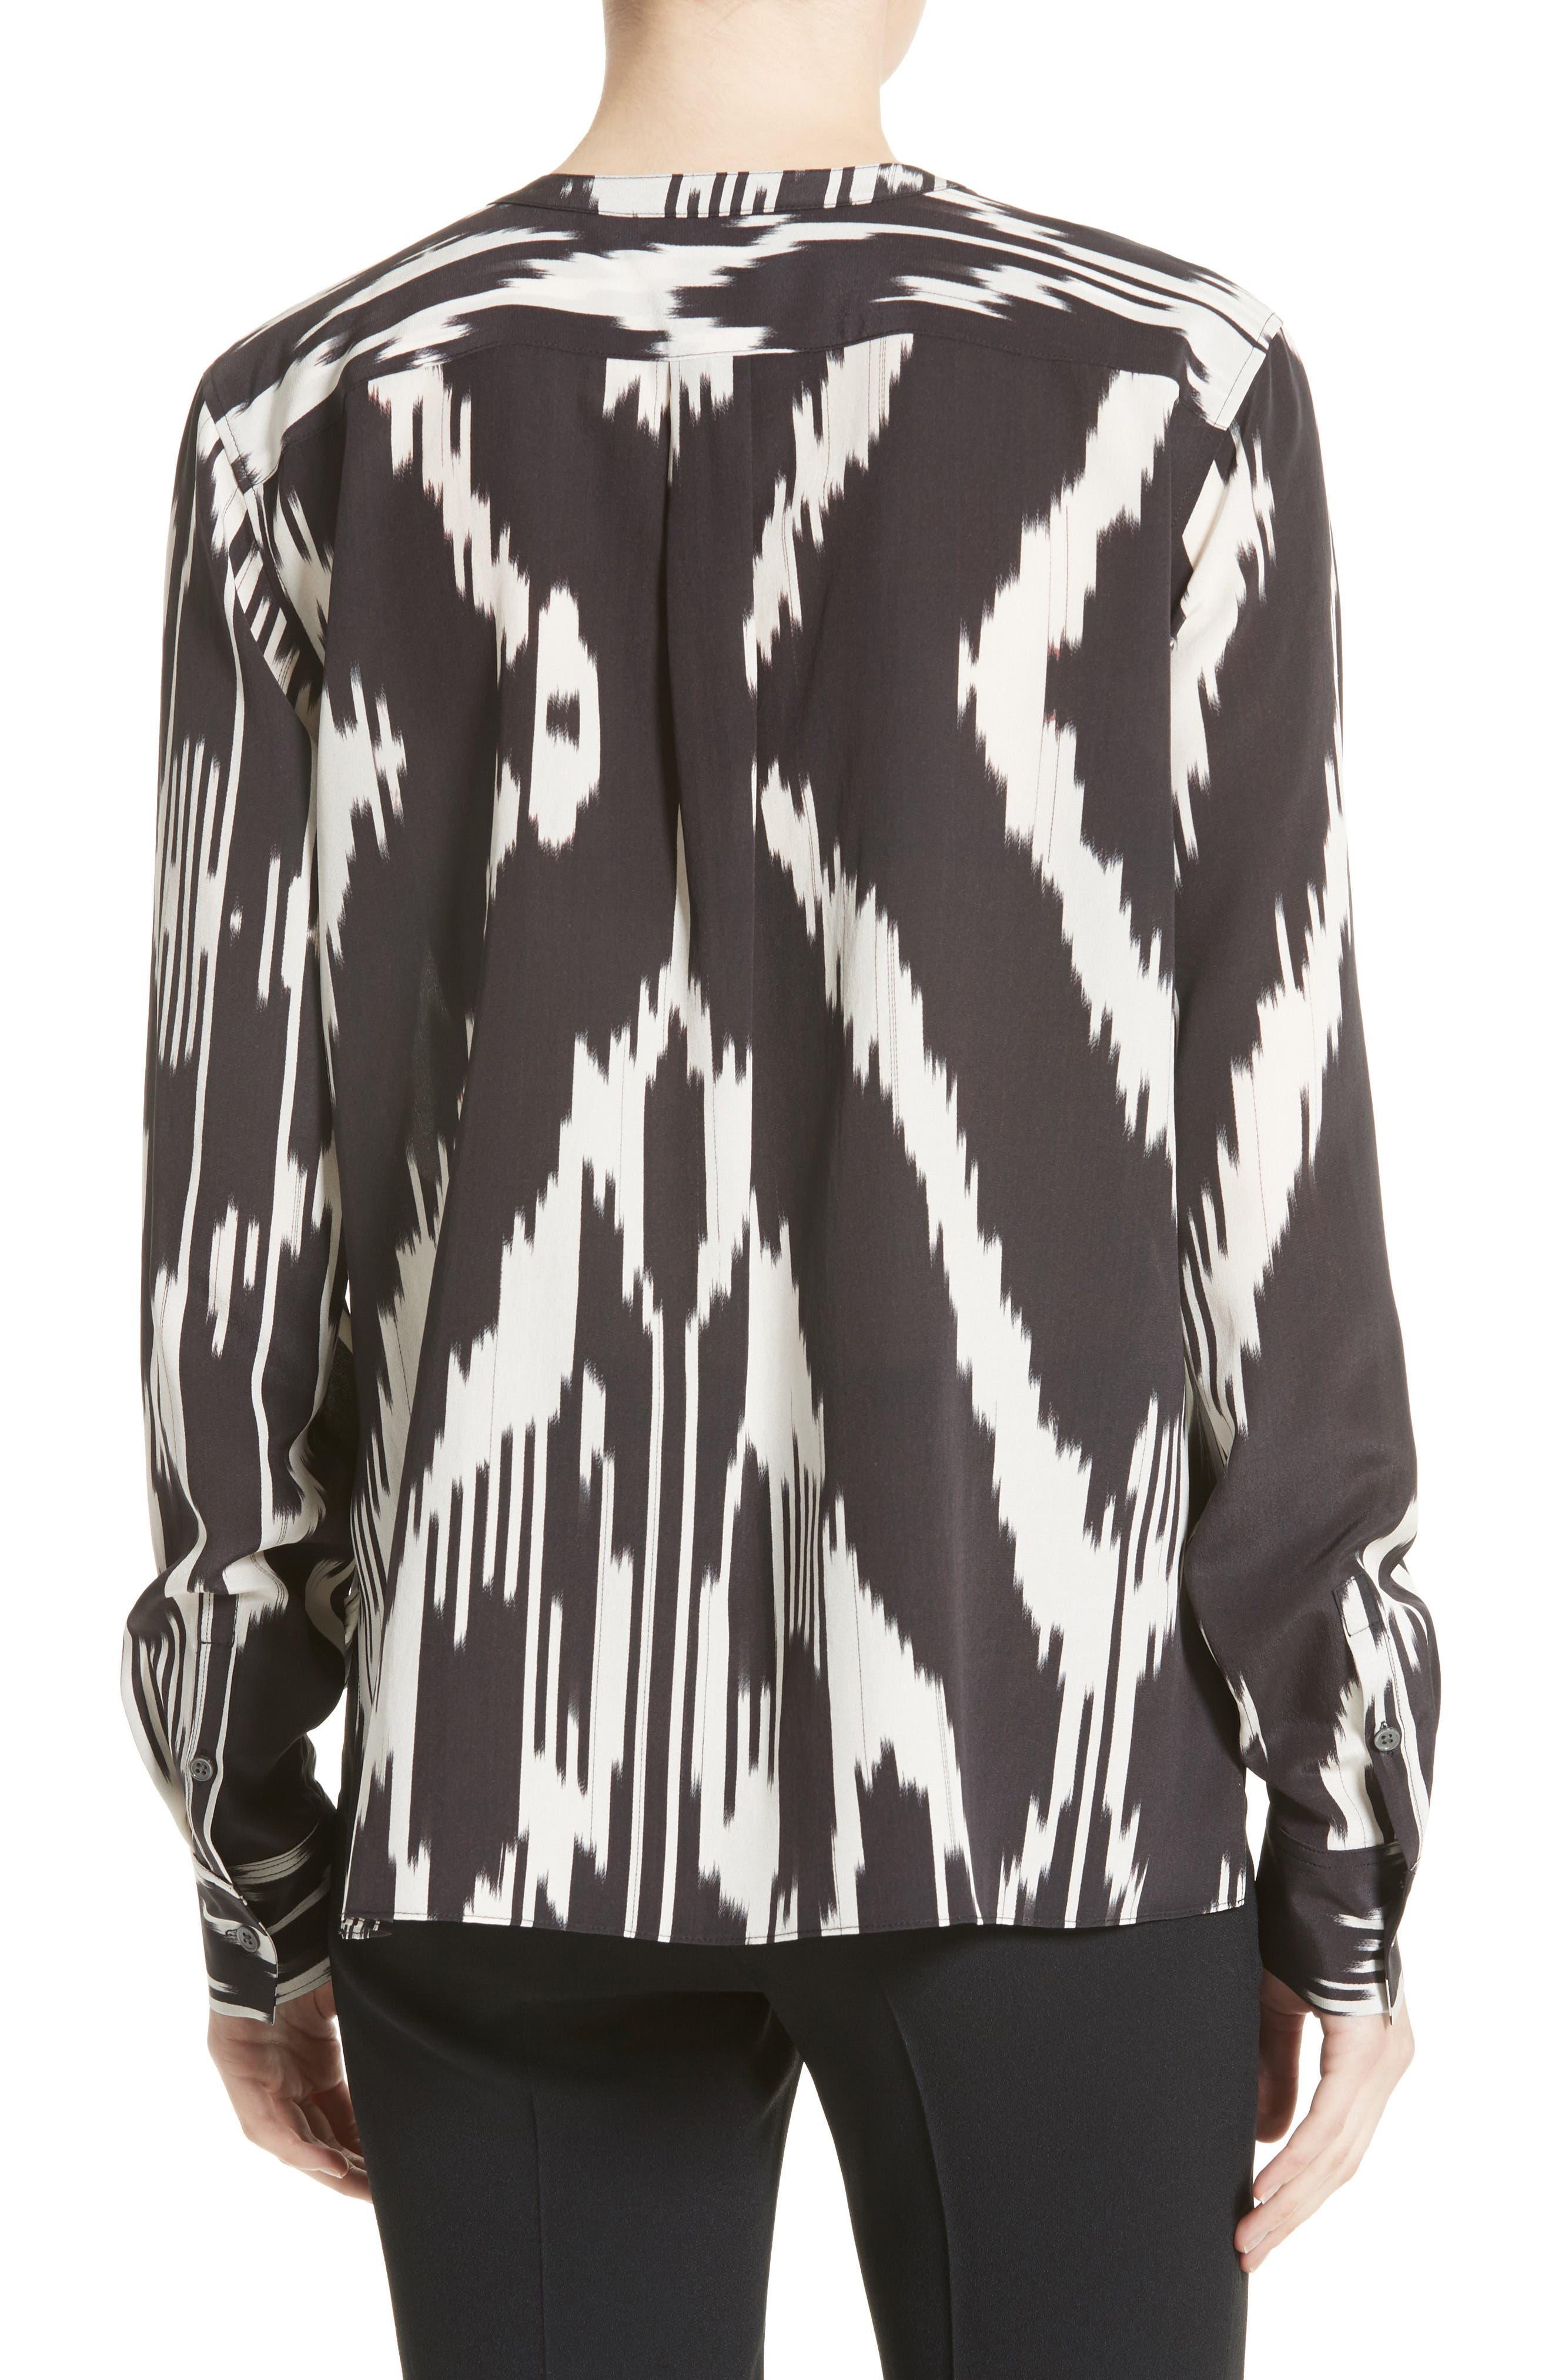 Isalva Interlace Ikat Silk Top,                             Alternate thumbnail 2, color,                             015